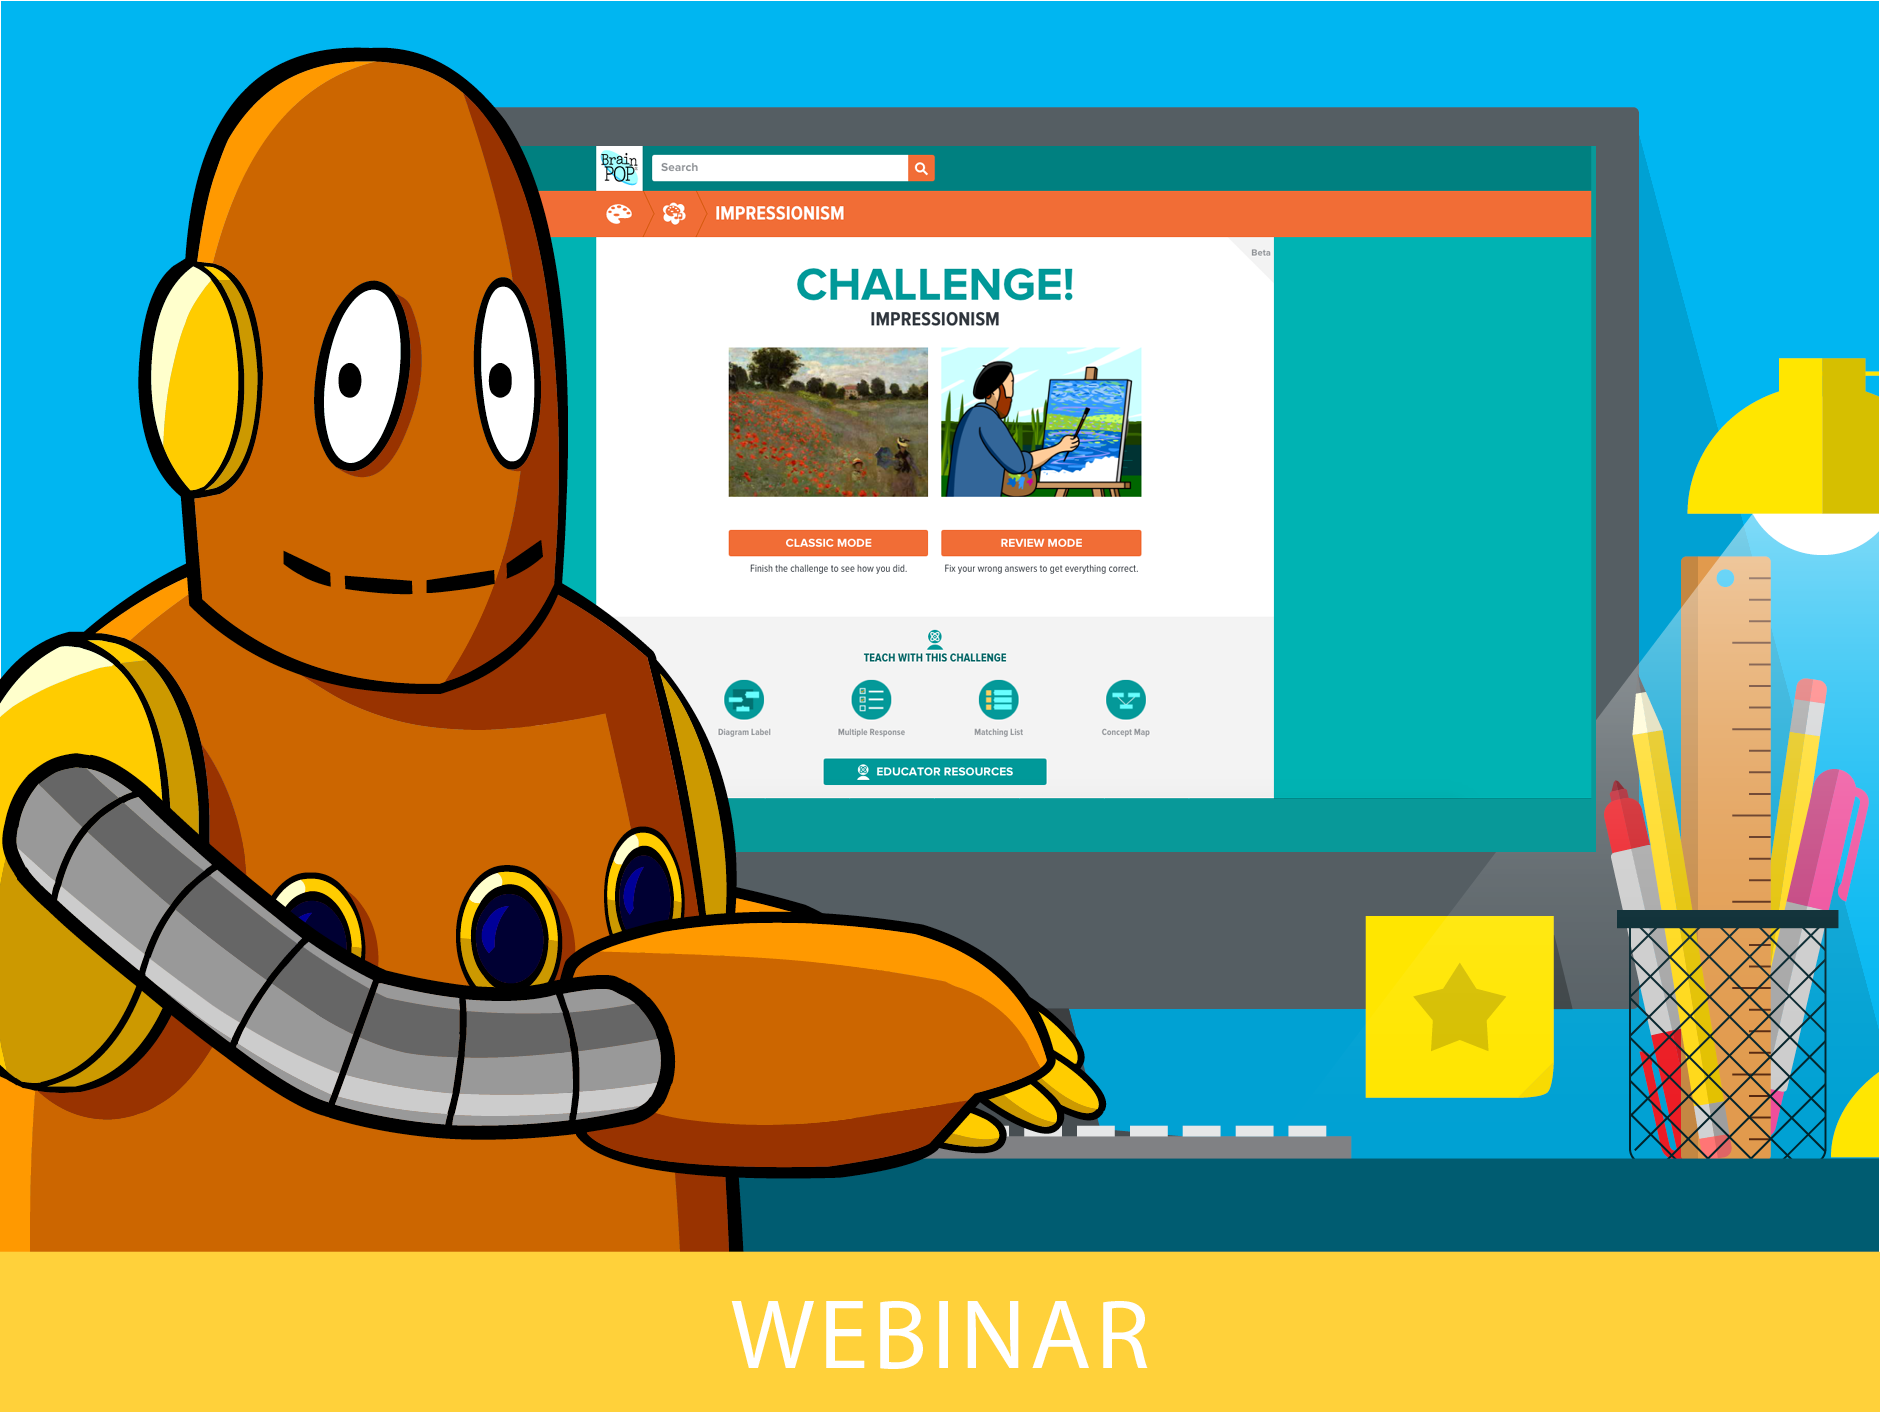 BrainPOP Presents Our Newest Feature: The Challenge